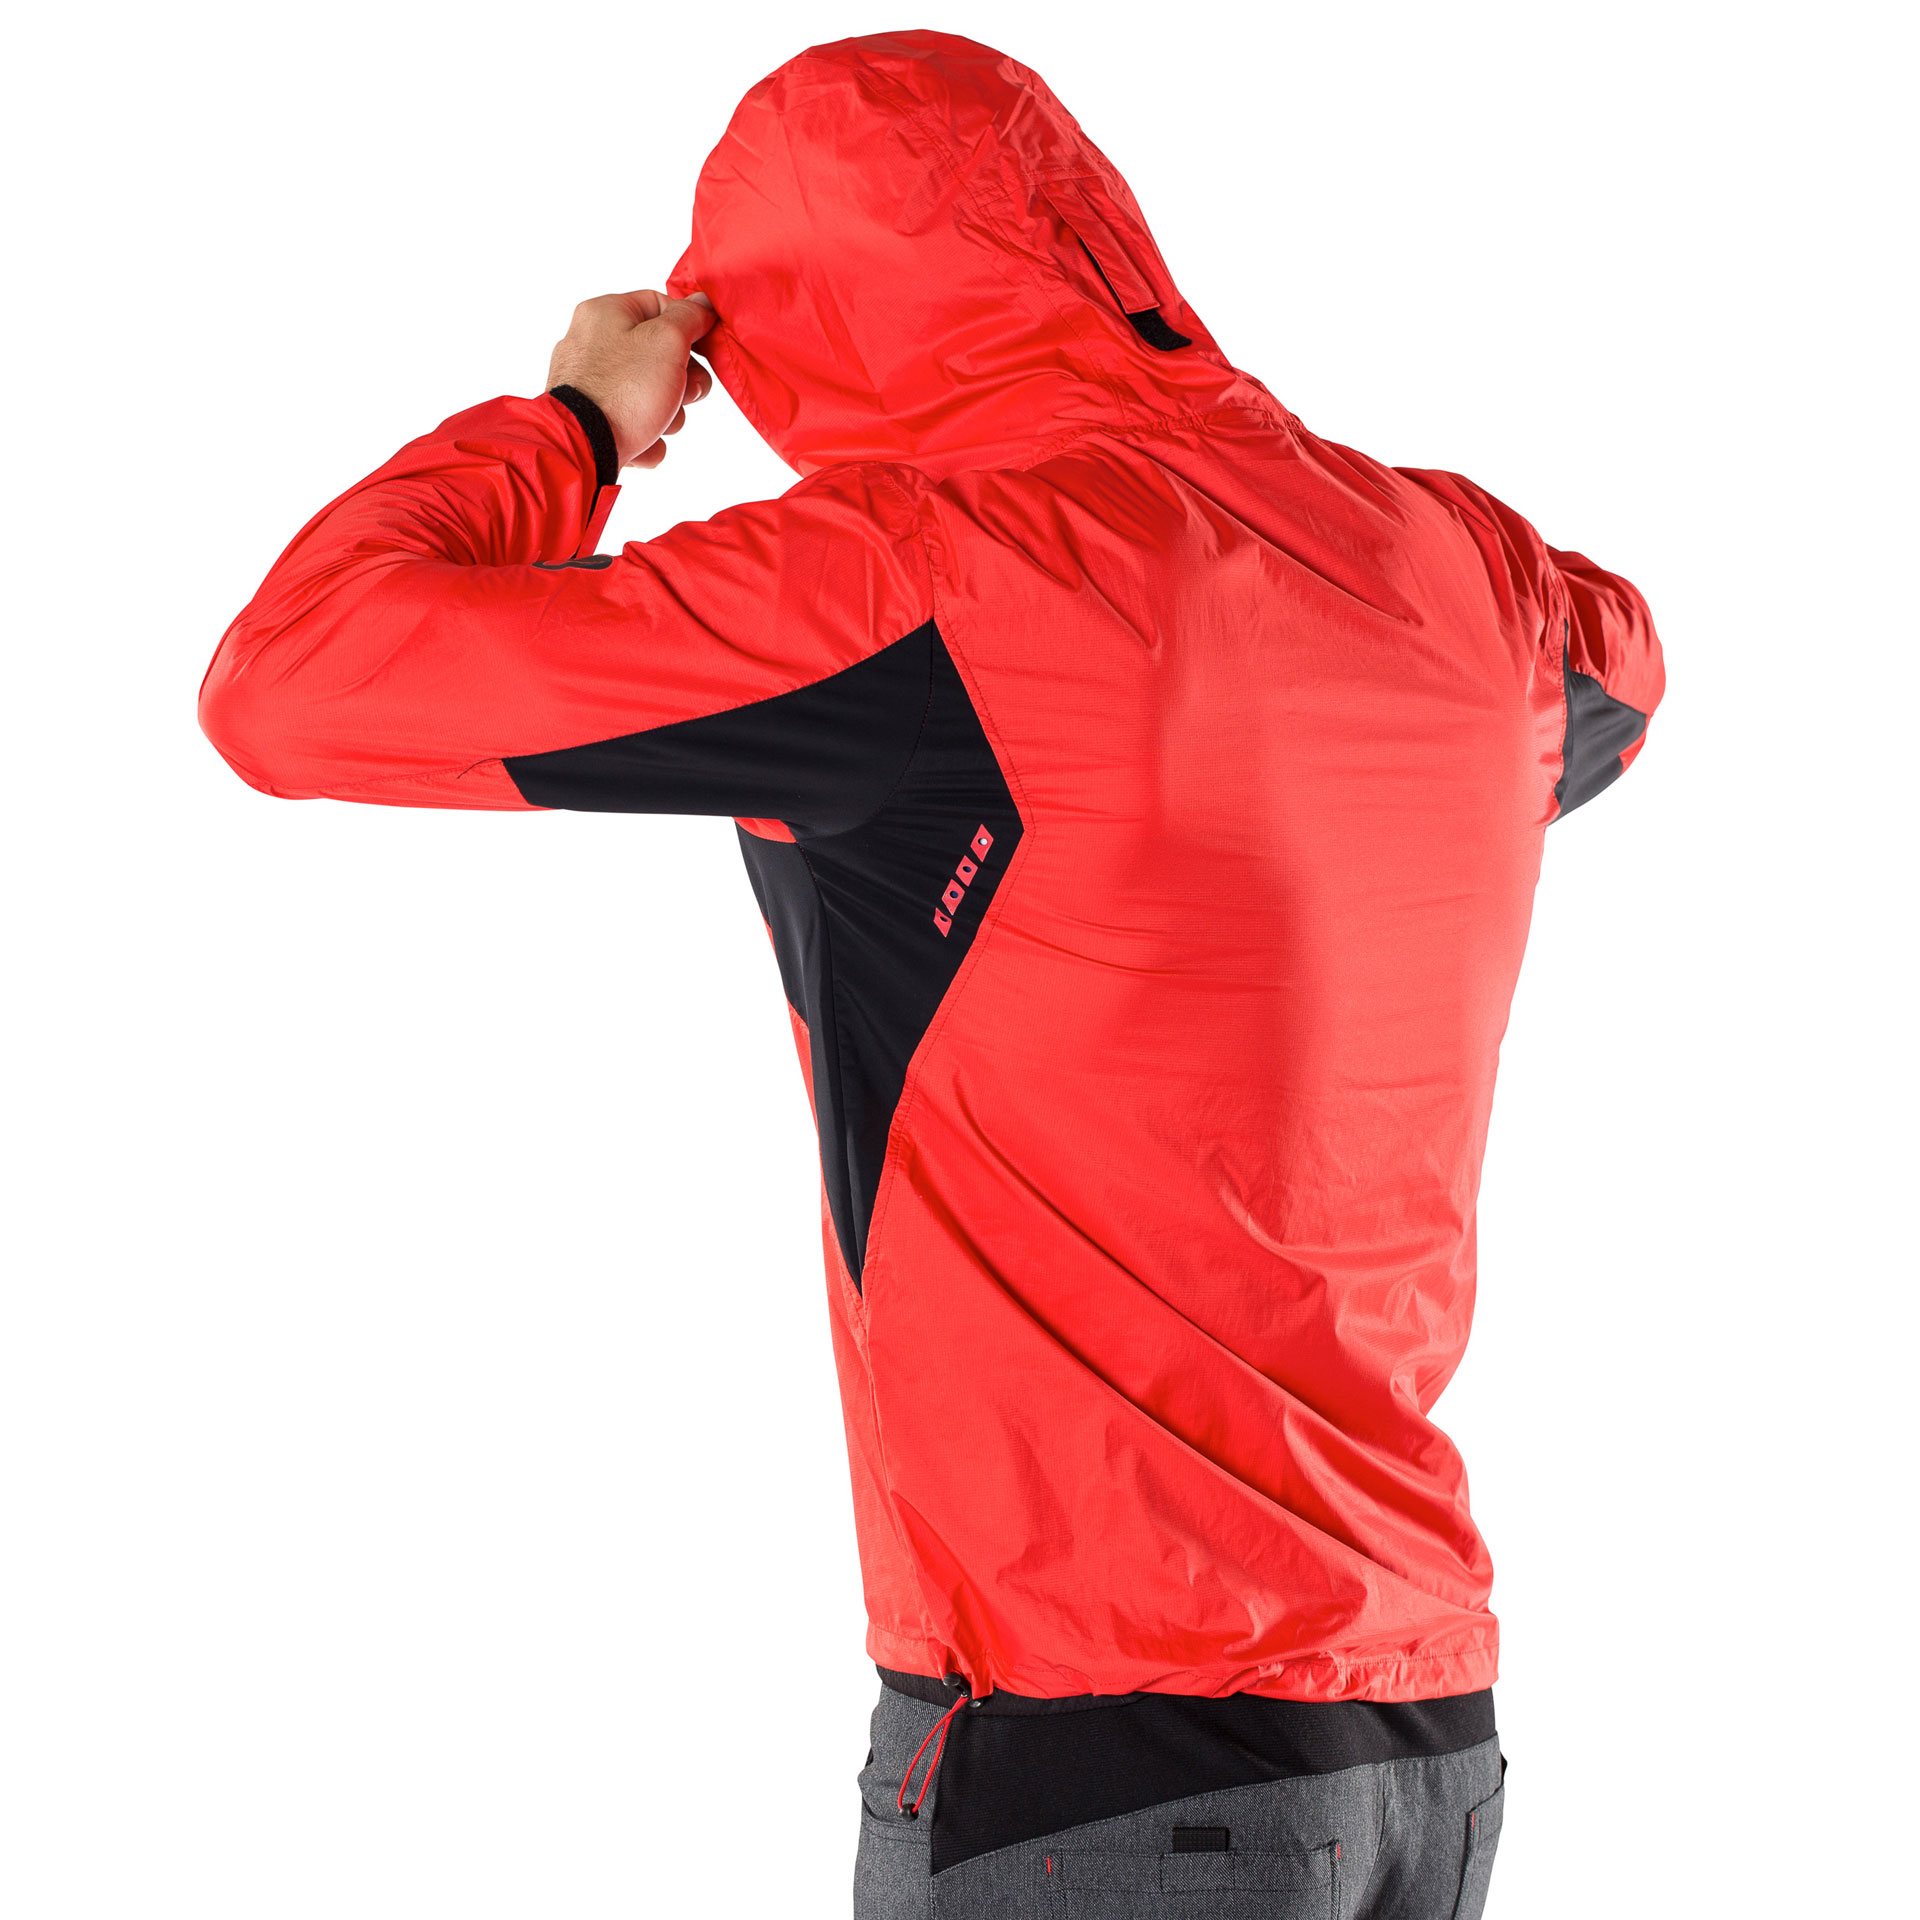 RCD RAINJACKET LIGHT - hot red - XXL - RCD RAINJACKET LIGHT - hot red - XXL